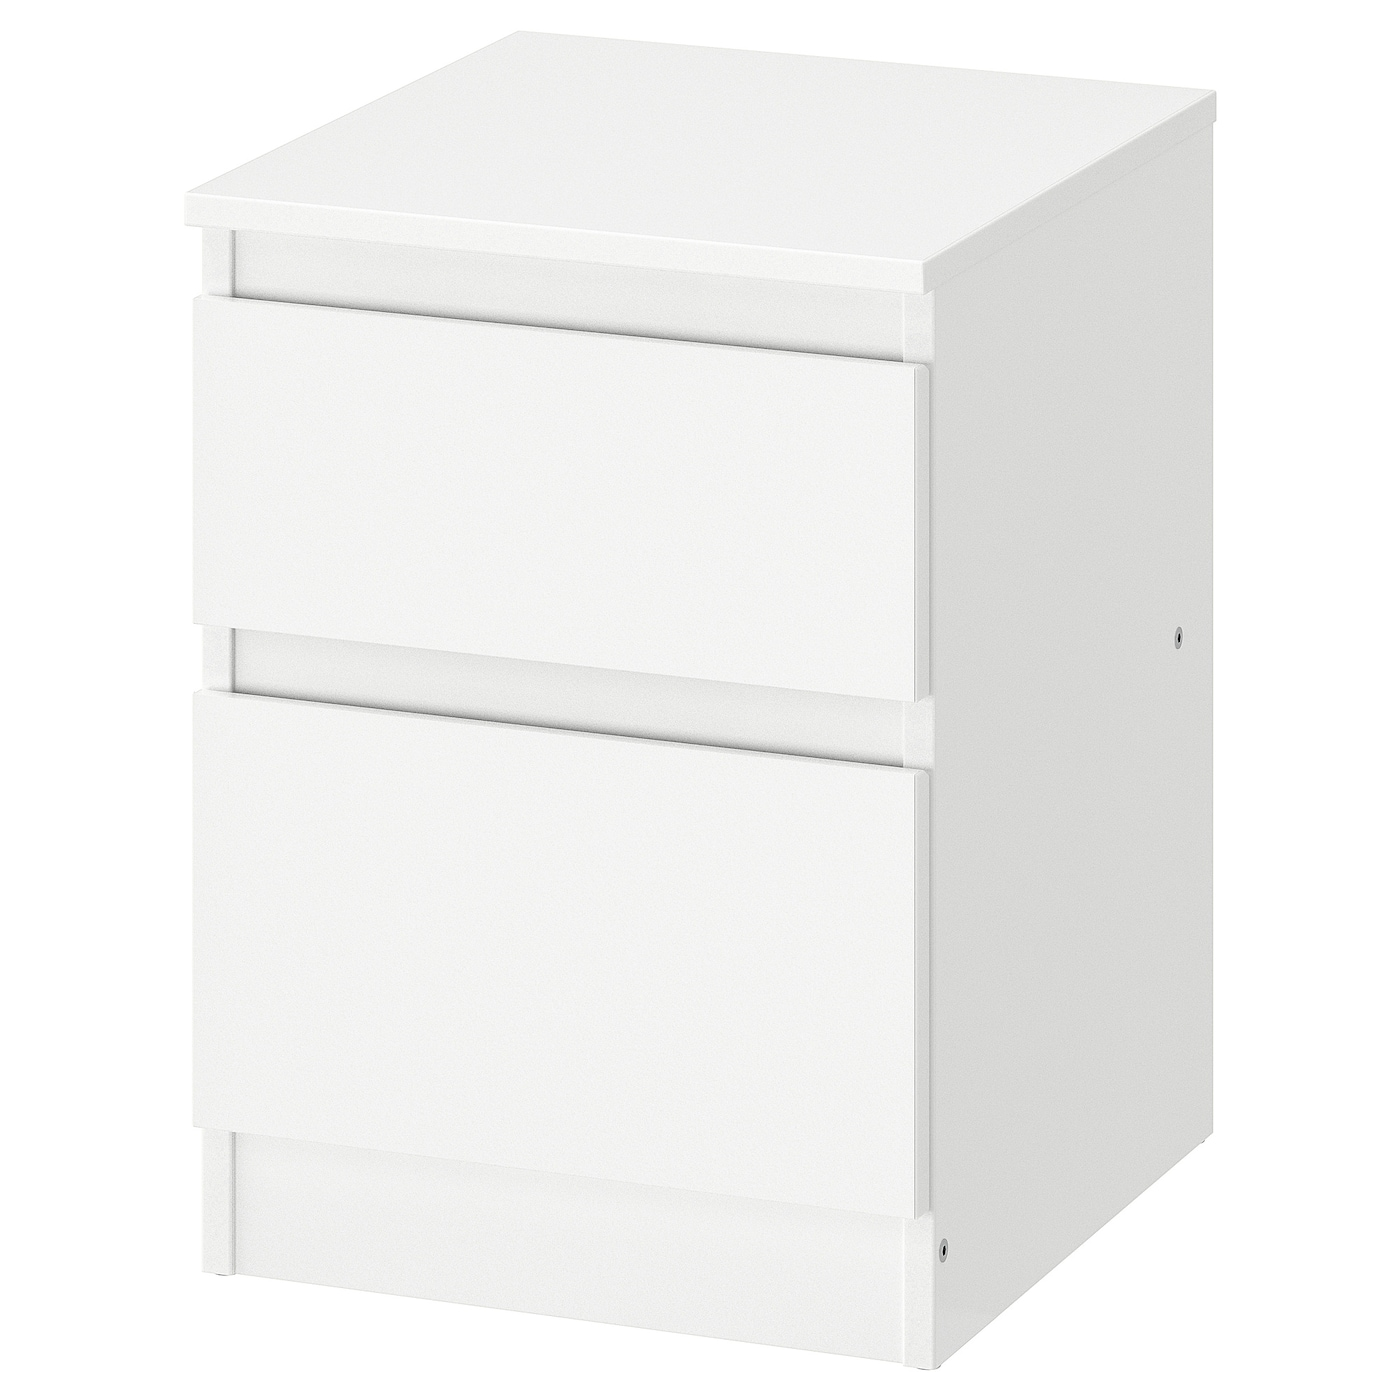 IKEA KULLEN chest of 2 drawers Can also be used as a bedside table.